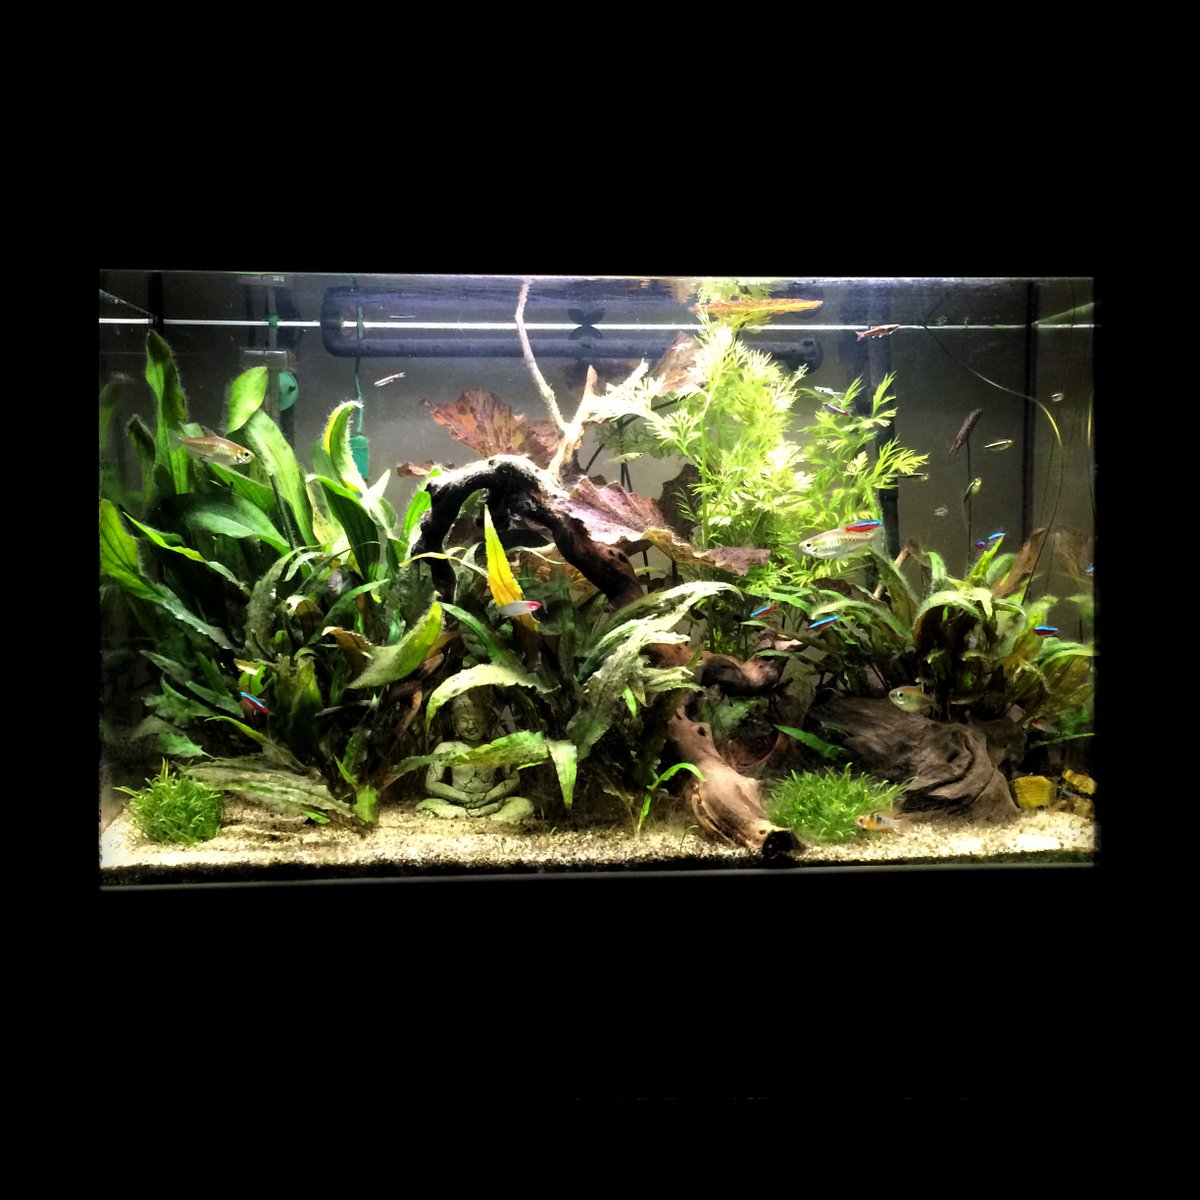 Aquatlantis Easy Led Verlichting Aquatlantis Hashtag On Twitter